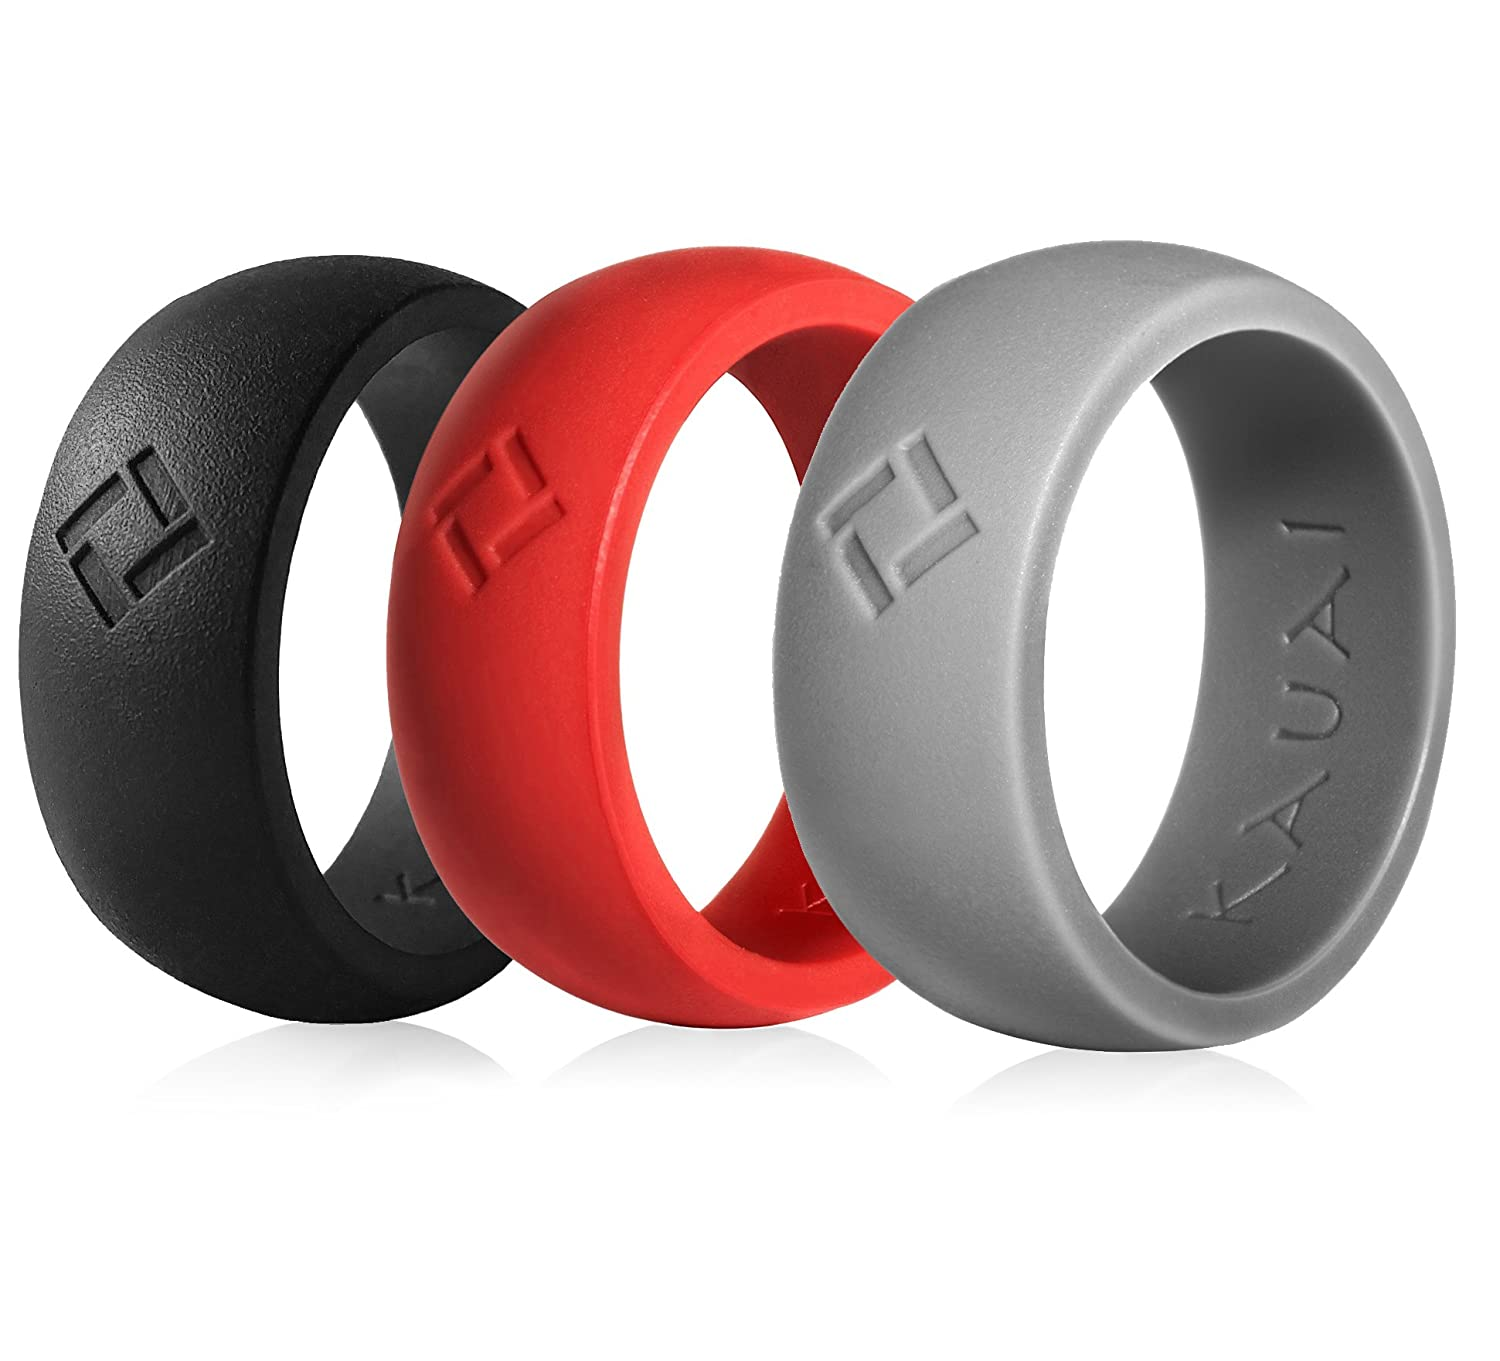 59c68cfc6ec2c KAUAI - Silicone Wedding Rings - 3-Pack, Leading Brand, from The Latest  Artist Design Innovations to Leading-Edge Comfort: Pro-Athletic Ring for Men